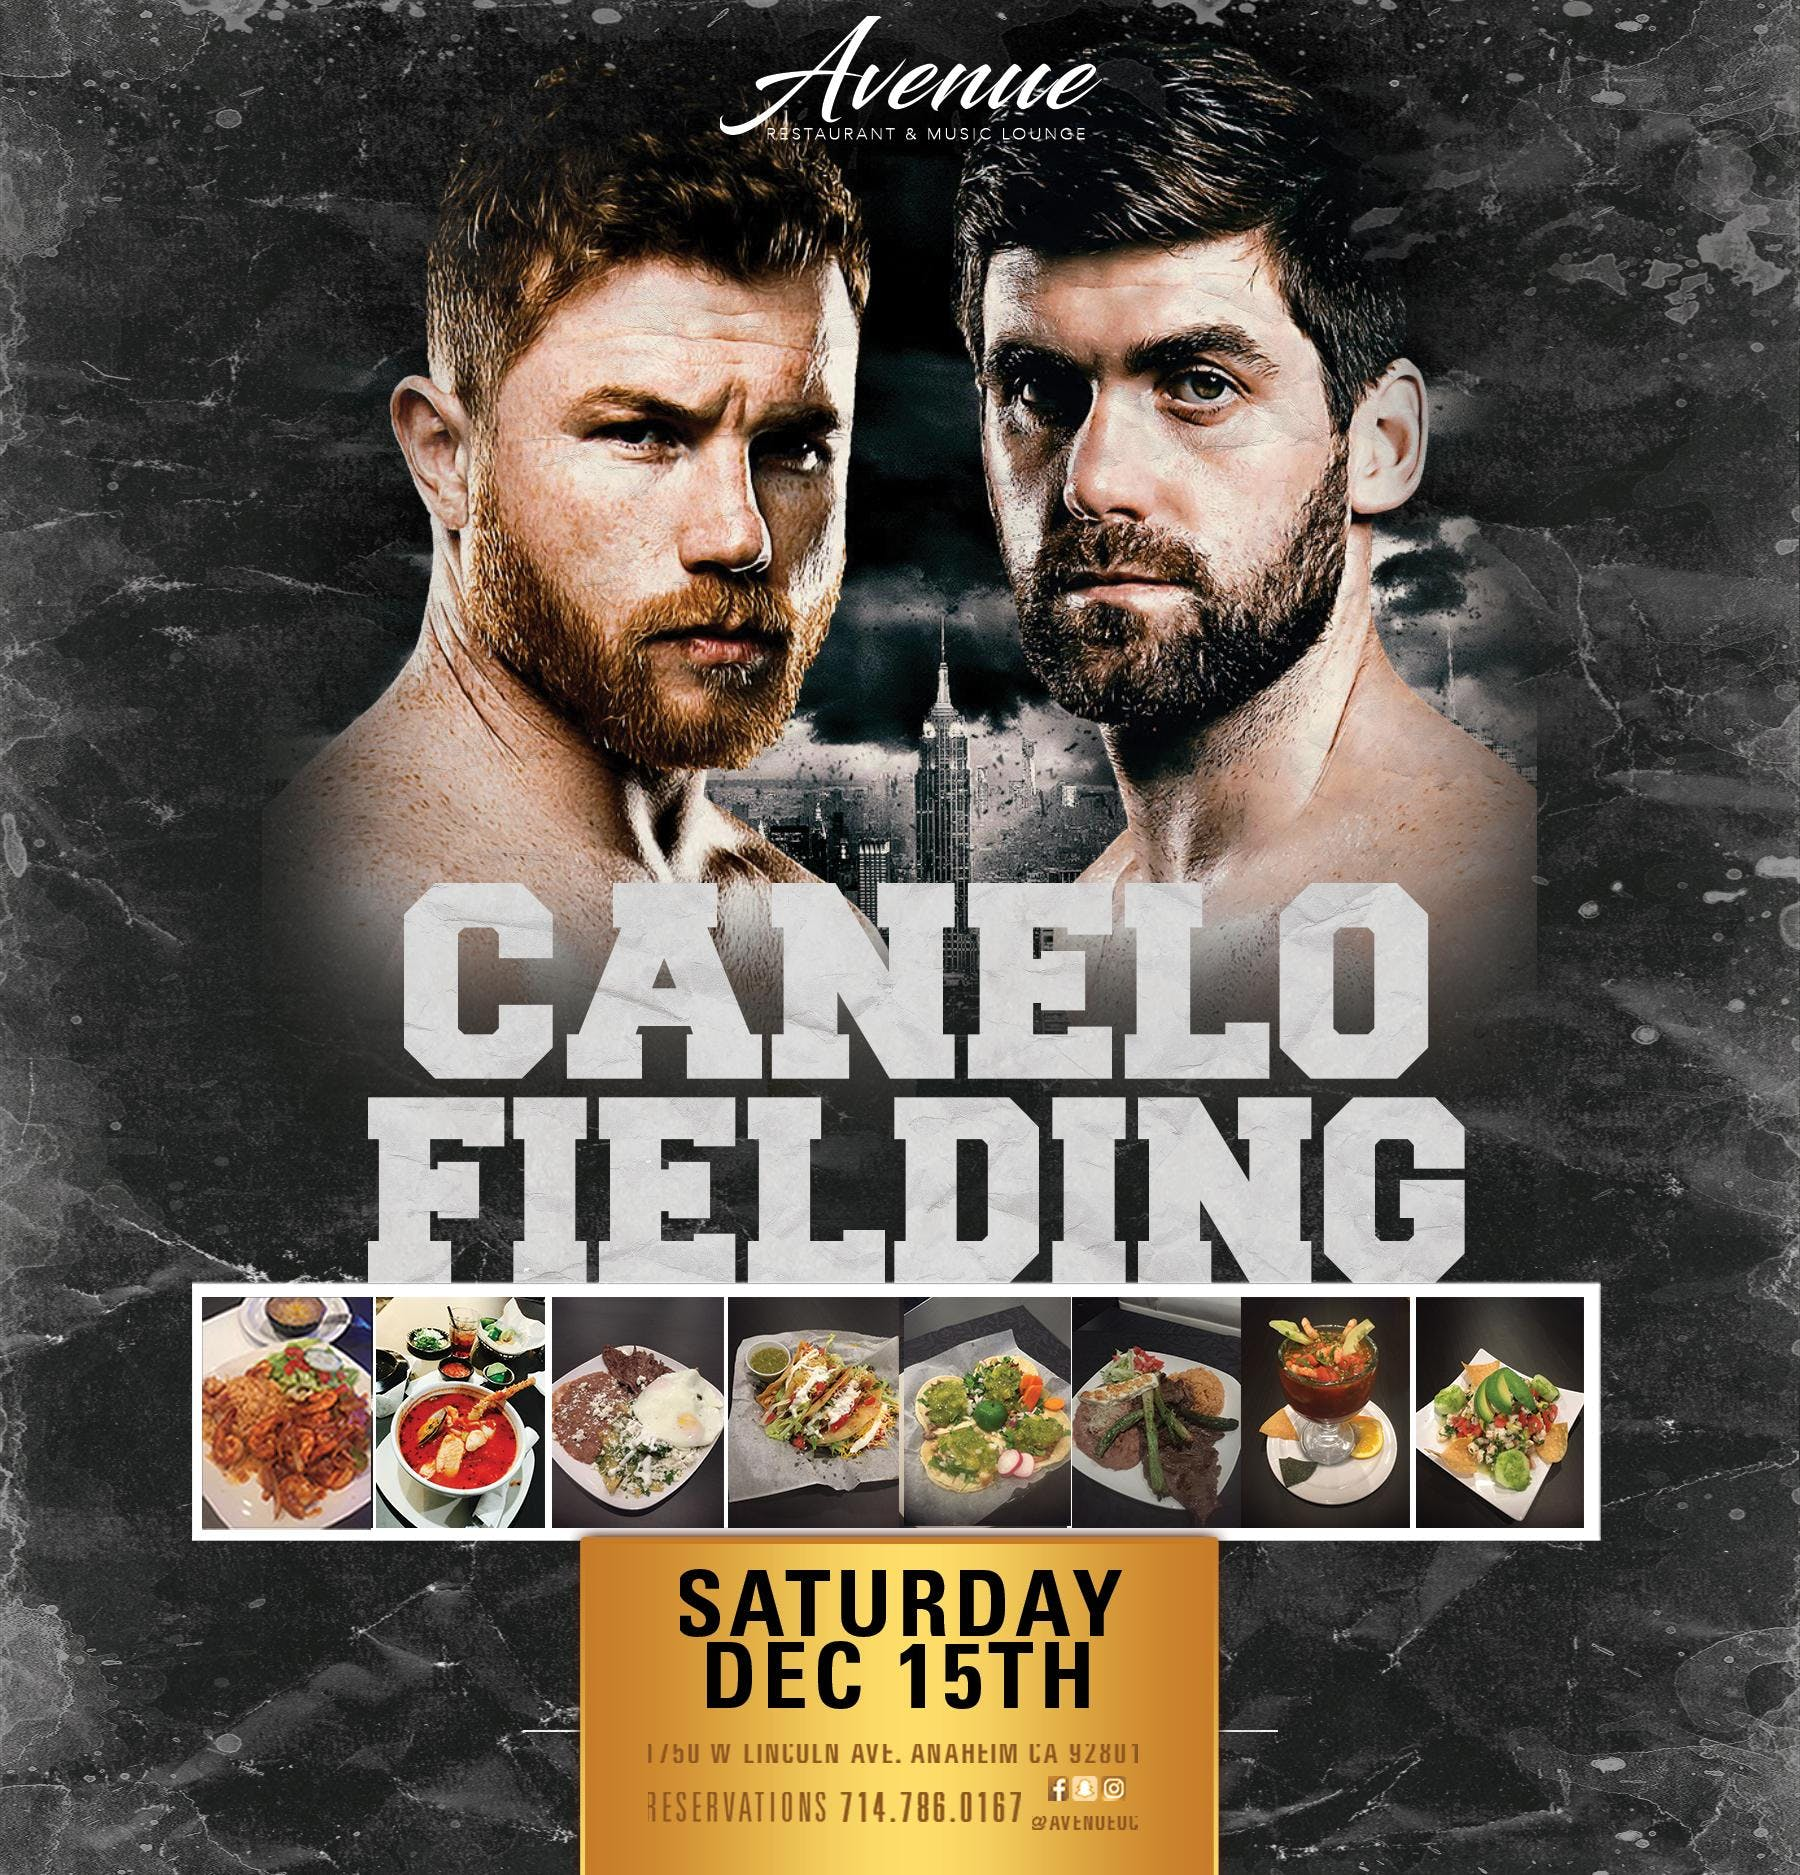 CANELO VS FIELDING VIEWING PARTY